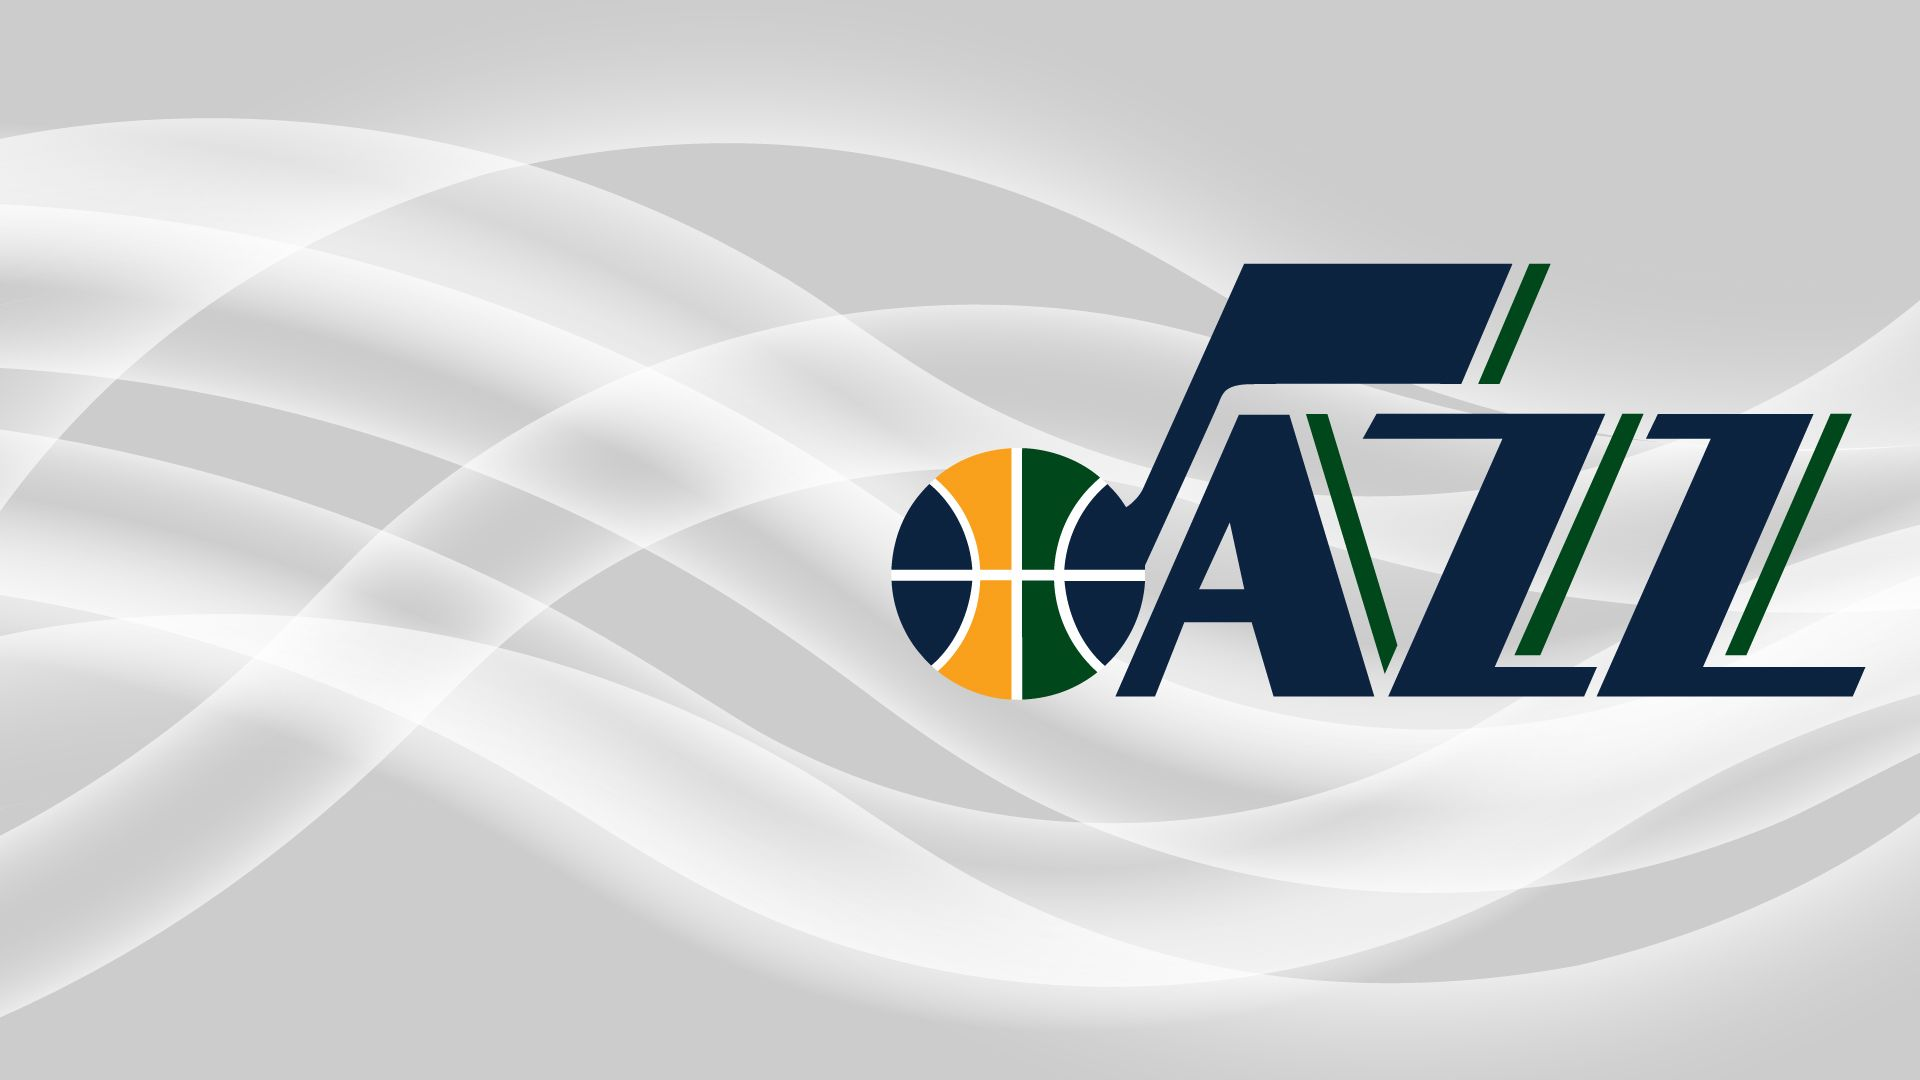 Utah jazz wallpaper hd background download mobile iphone s galaxy utah jazz wallpaper hd background download mobile iphone s galaxy 16001200 utah jazz wallpapers voltagebd Image collections